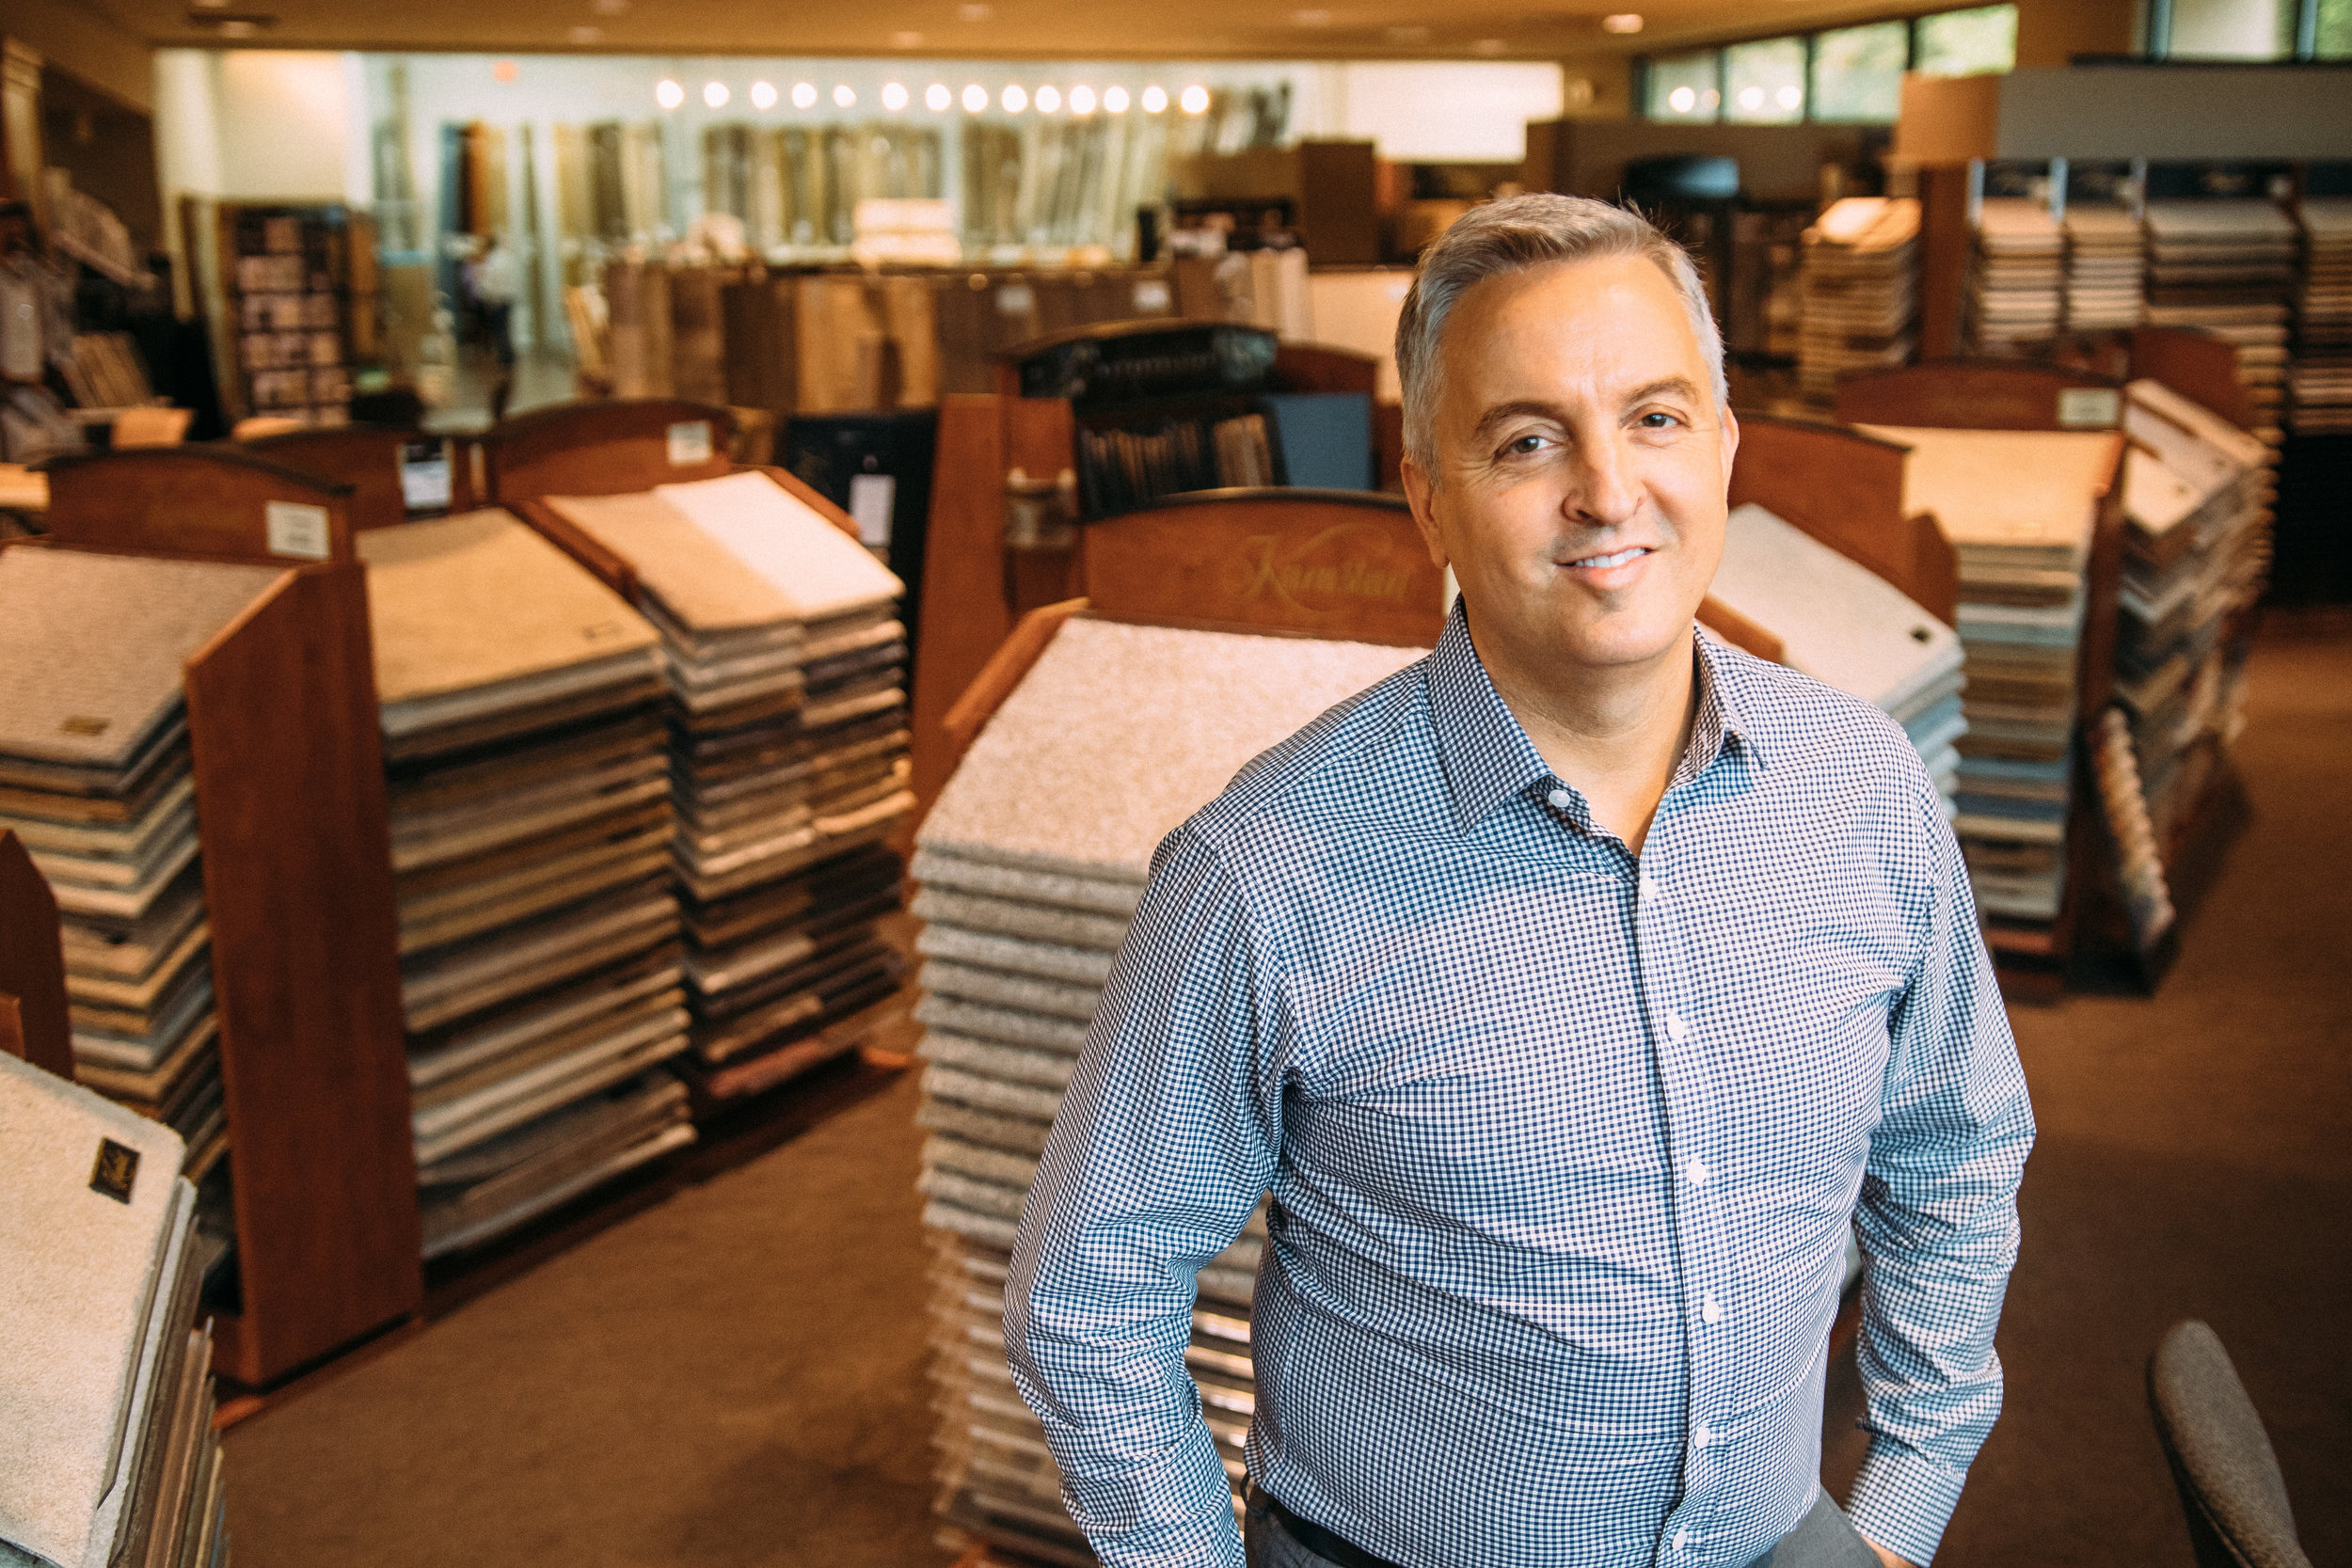 Carpet One flooring consultant Mike Hyde